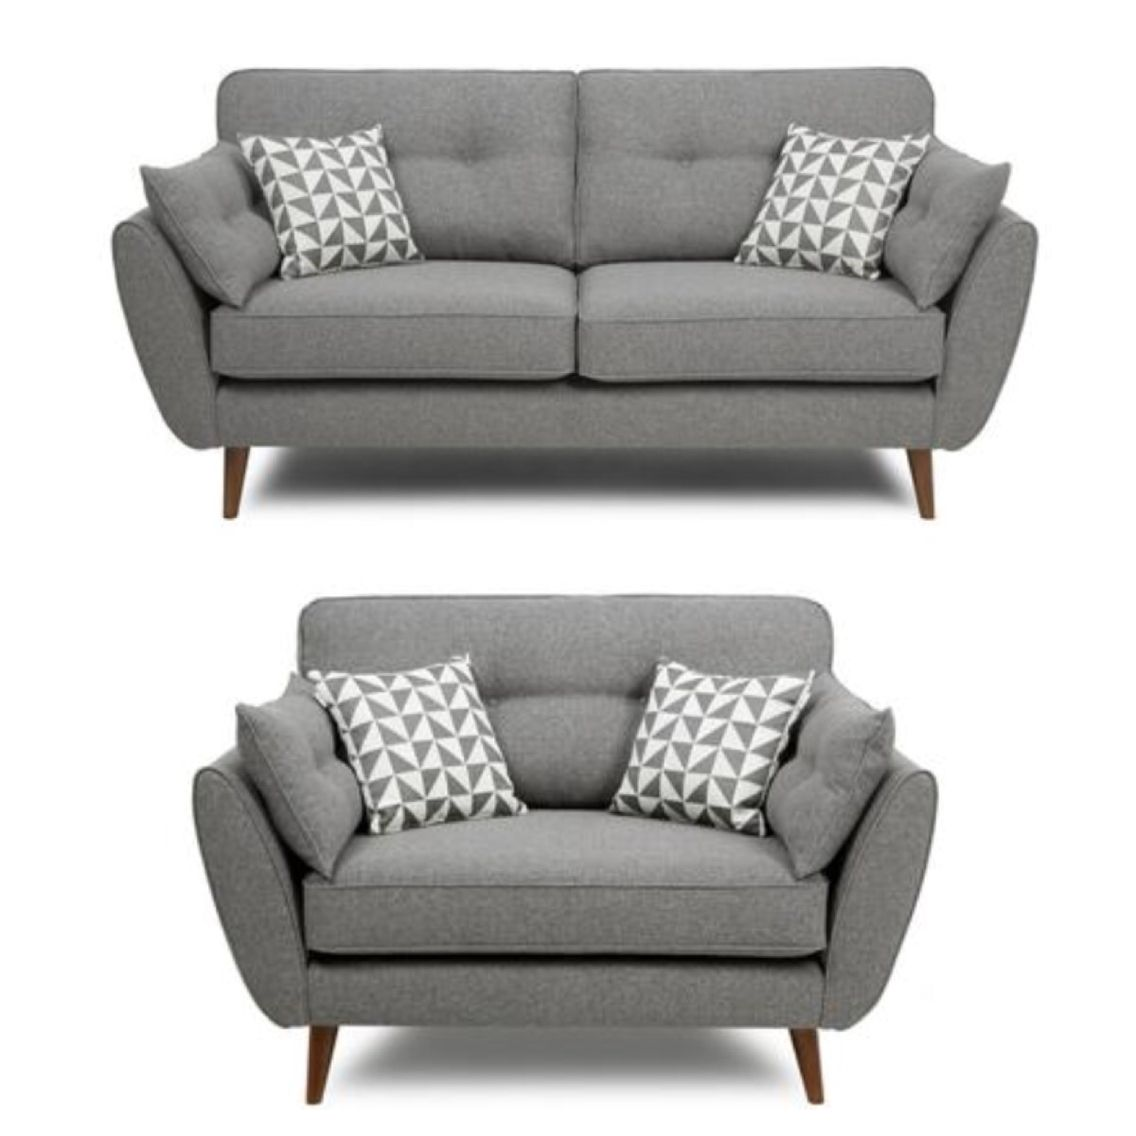 French Connection Slate Sofa Review New Low Cost Sofas Grey And Chair Maxwell Collection In